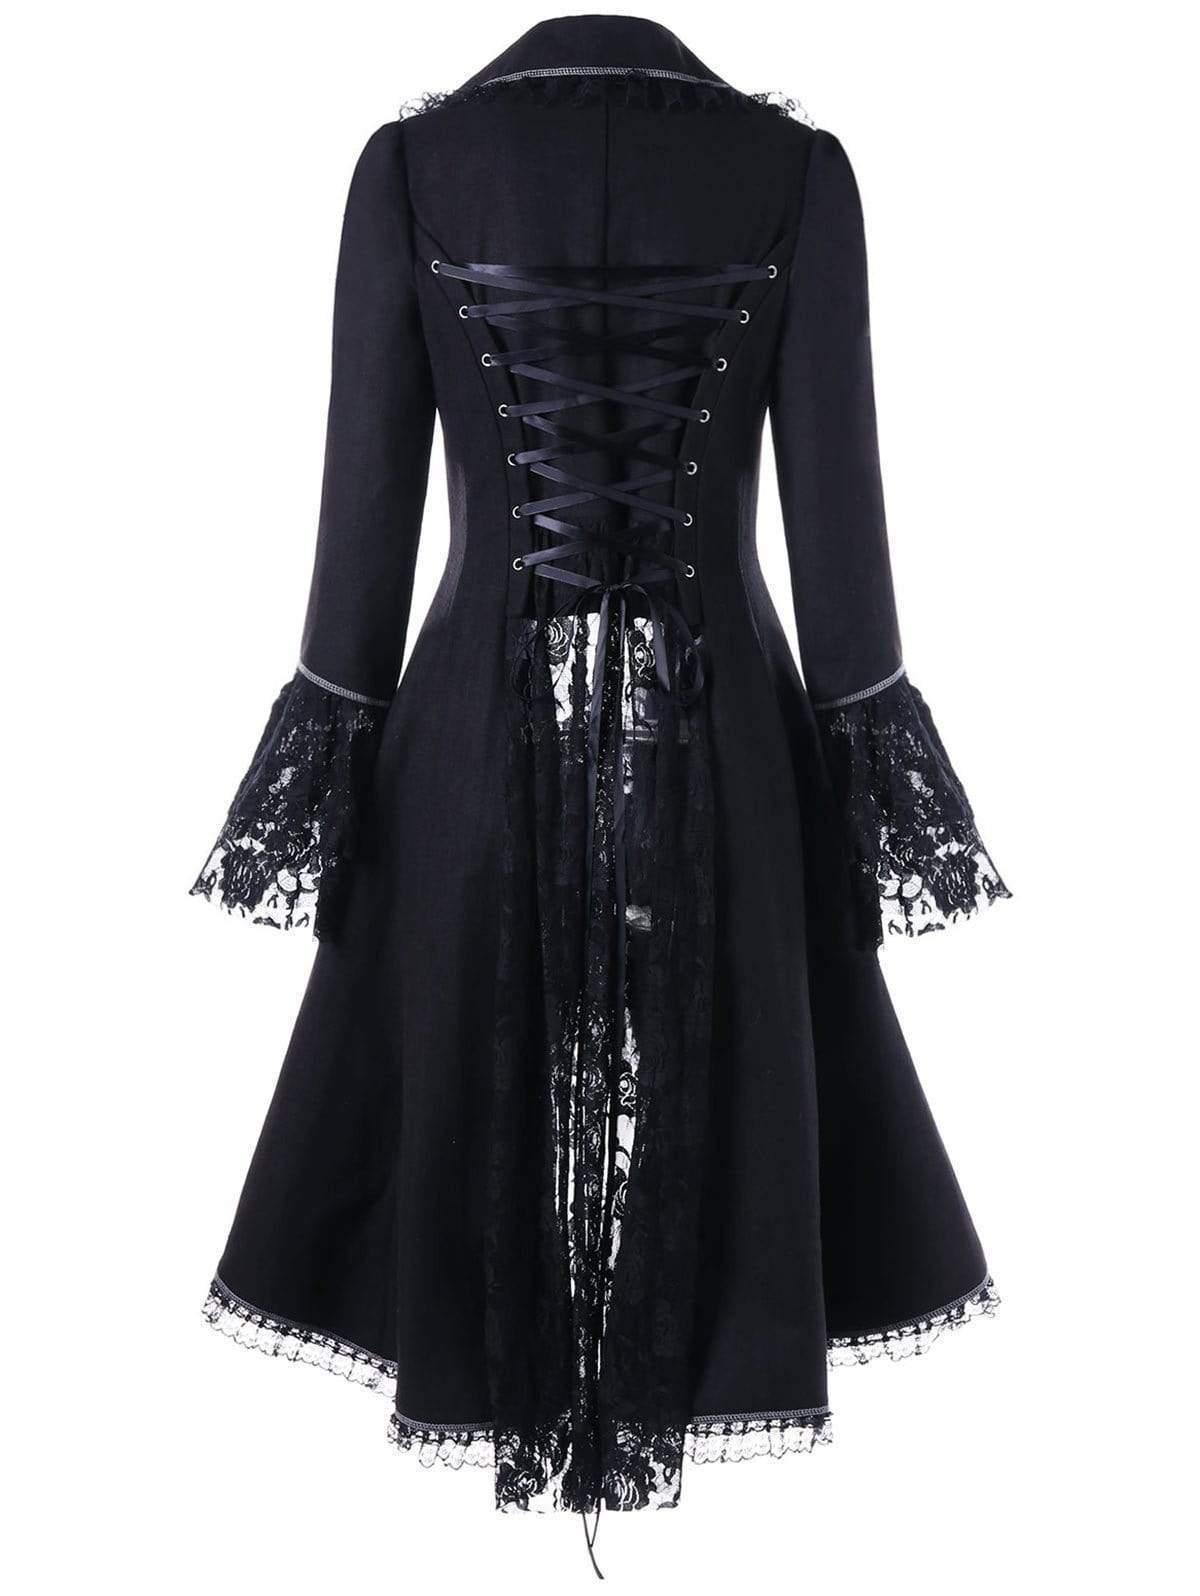 Bestkawaii-Lace-Sleeve-Waisted-Tuxedo-Coat